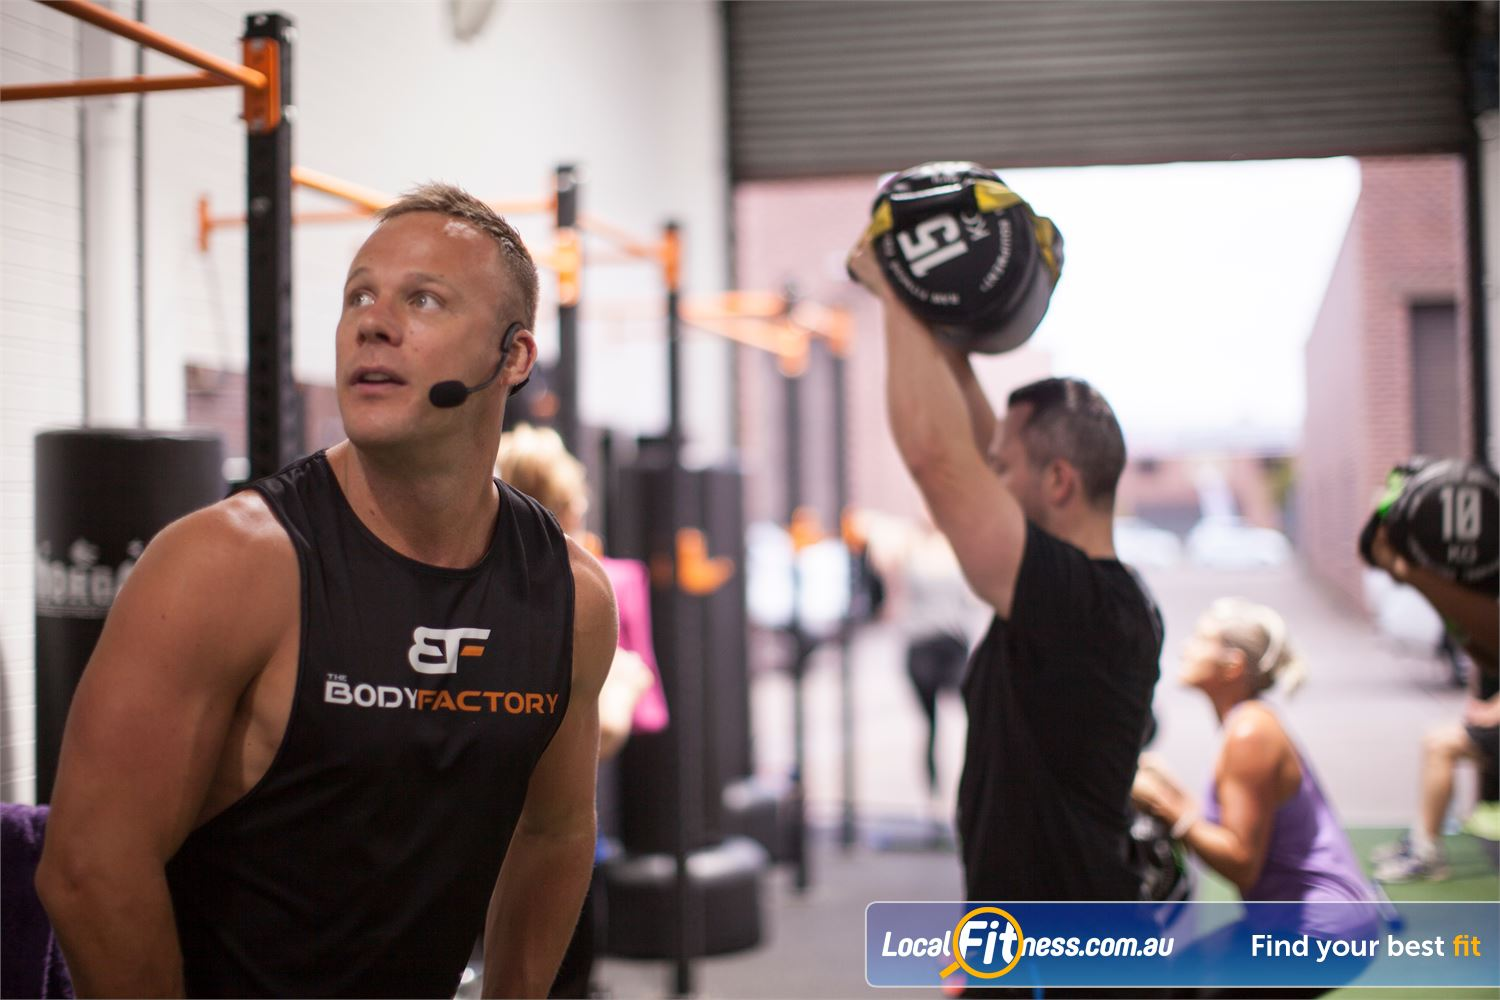 The Body Factory Caringbah Our coaches are there to help you smash your goals.